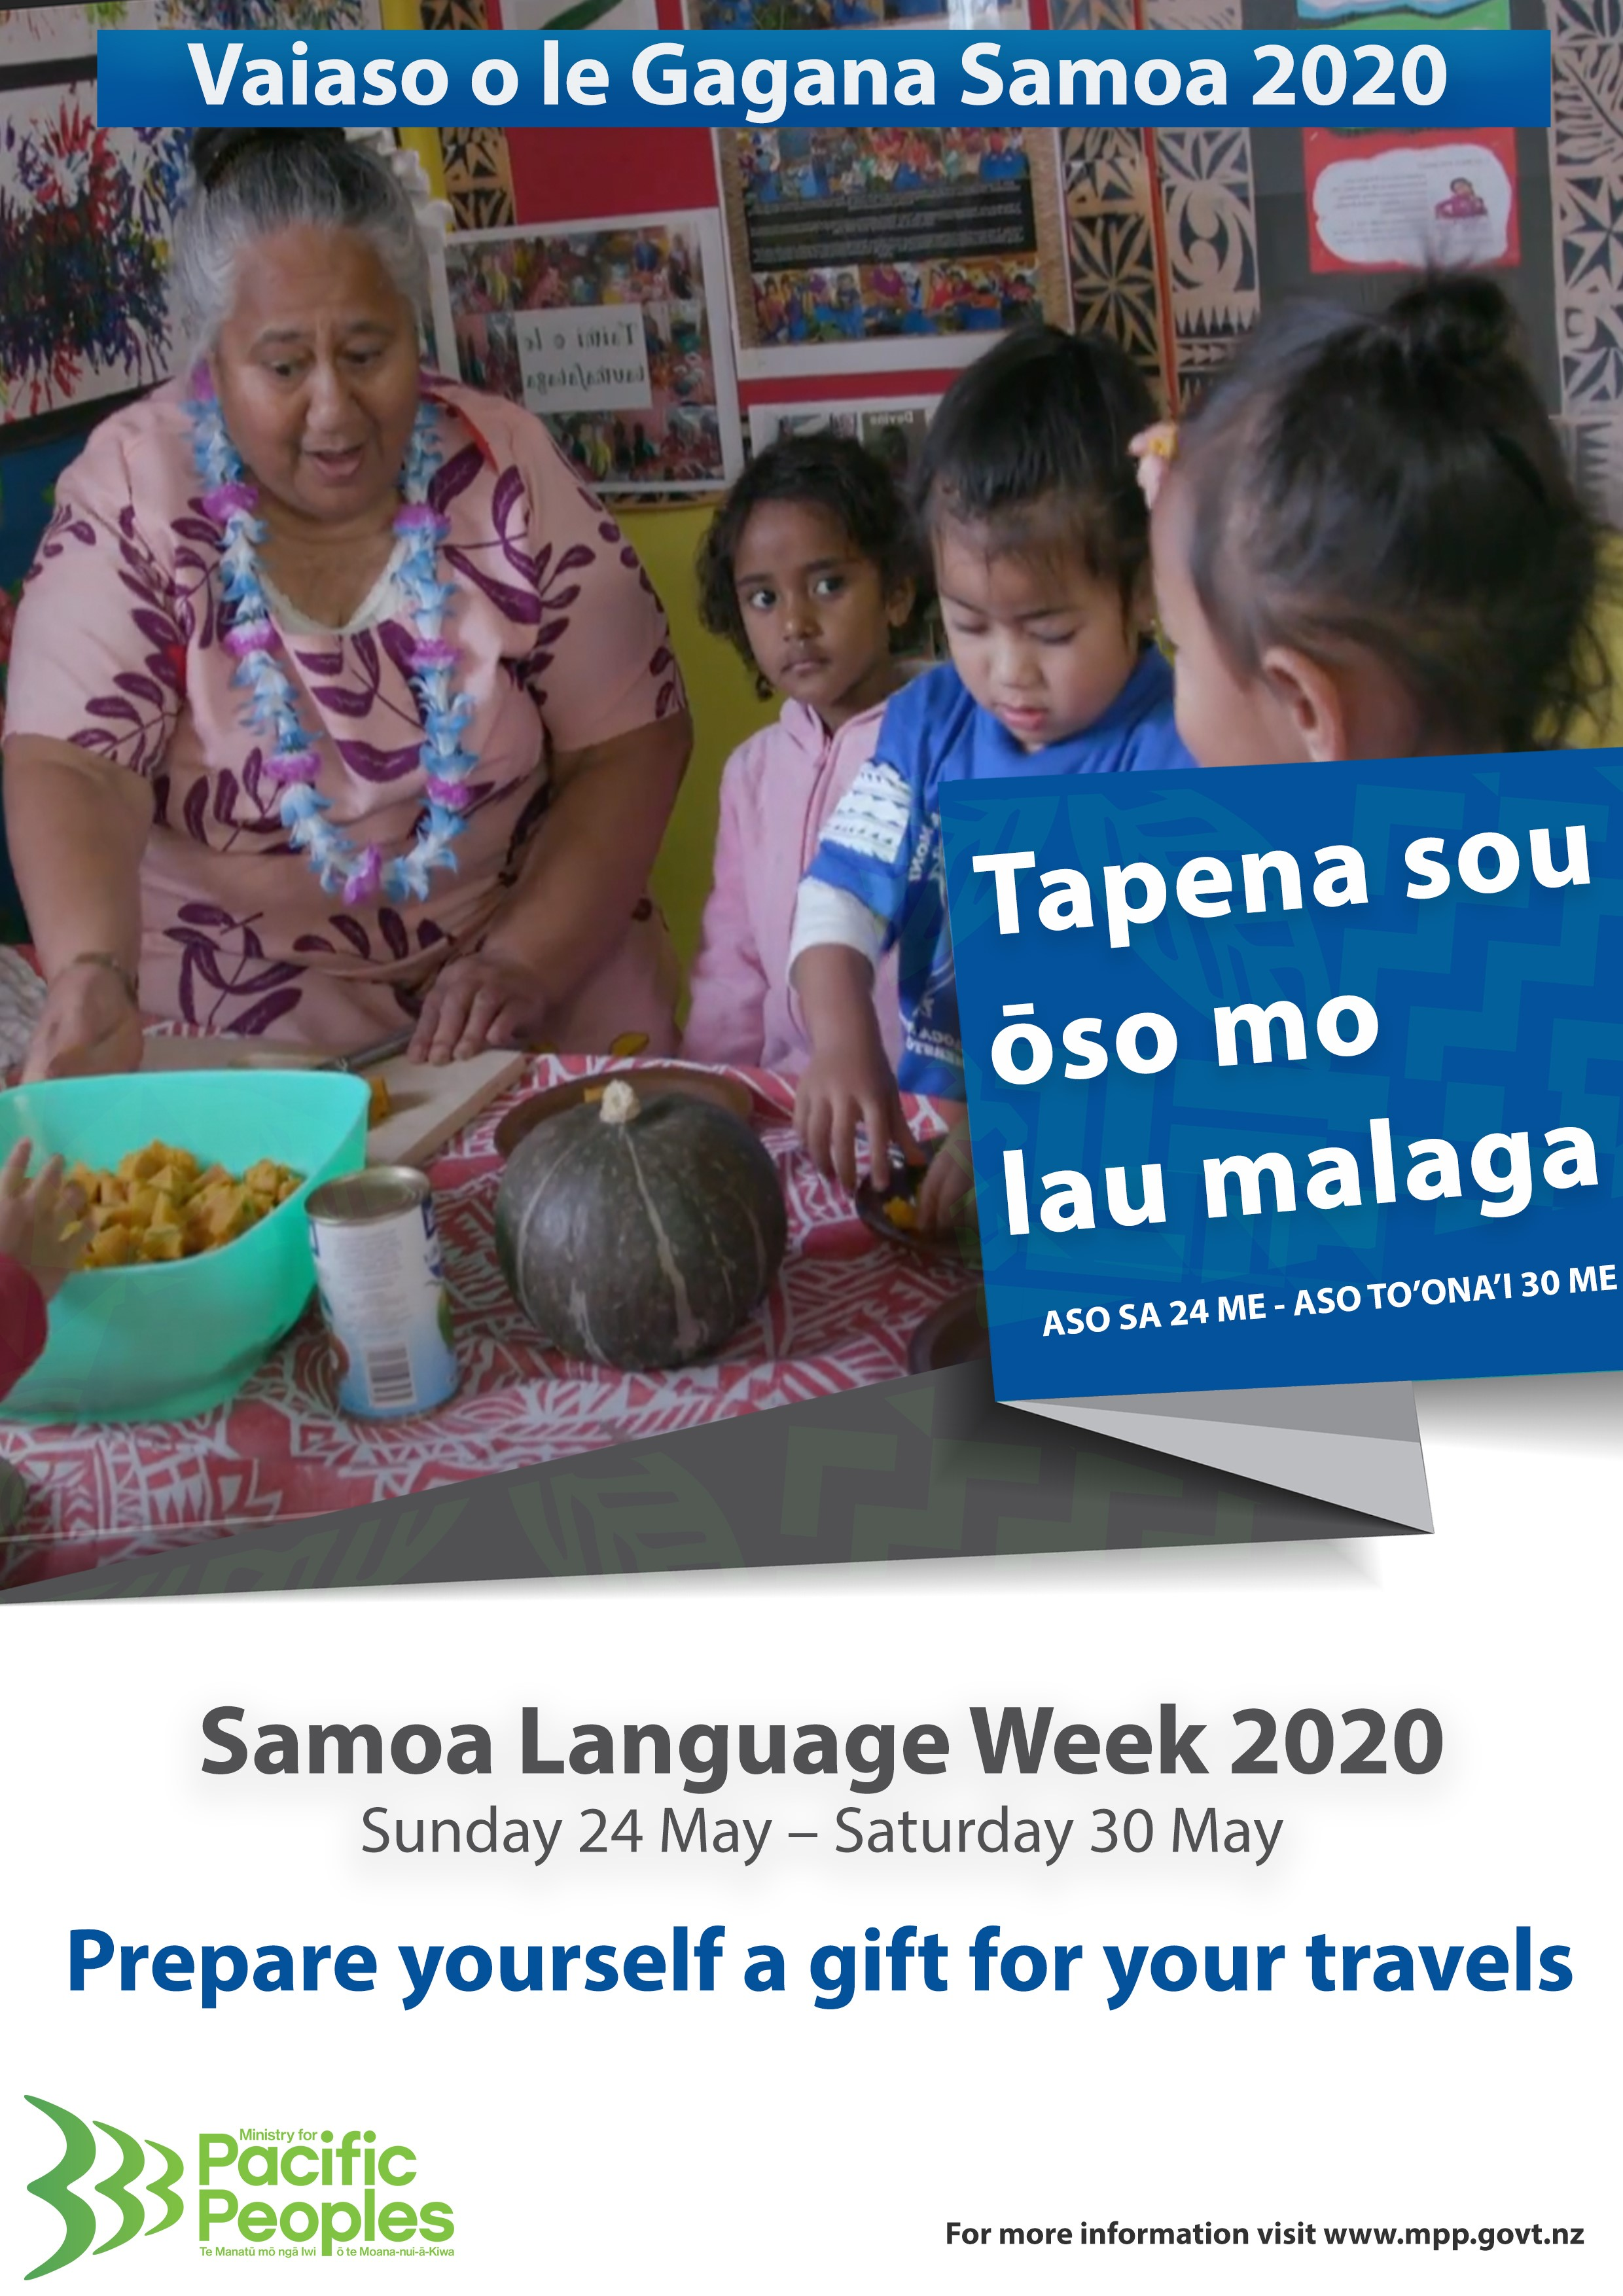 Samoa-Language-Week-Poster-2020.jpg